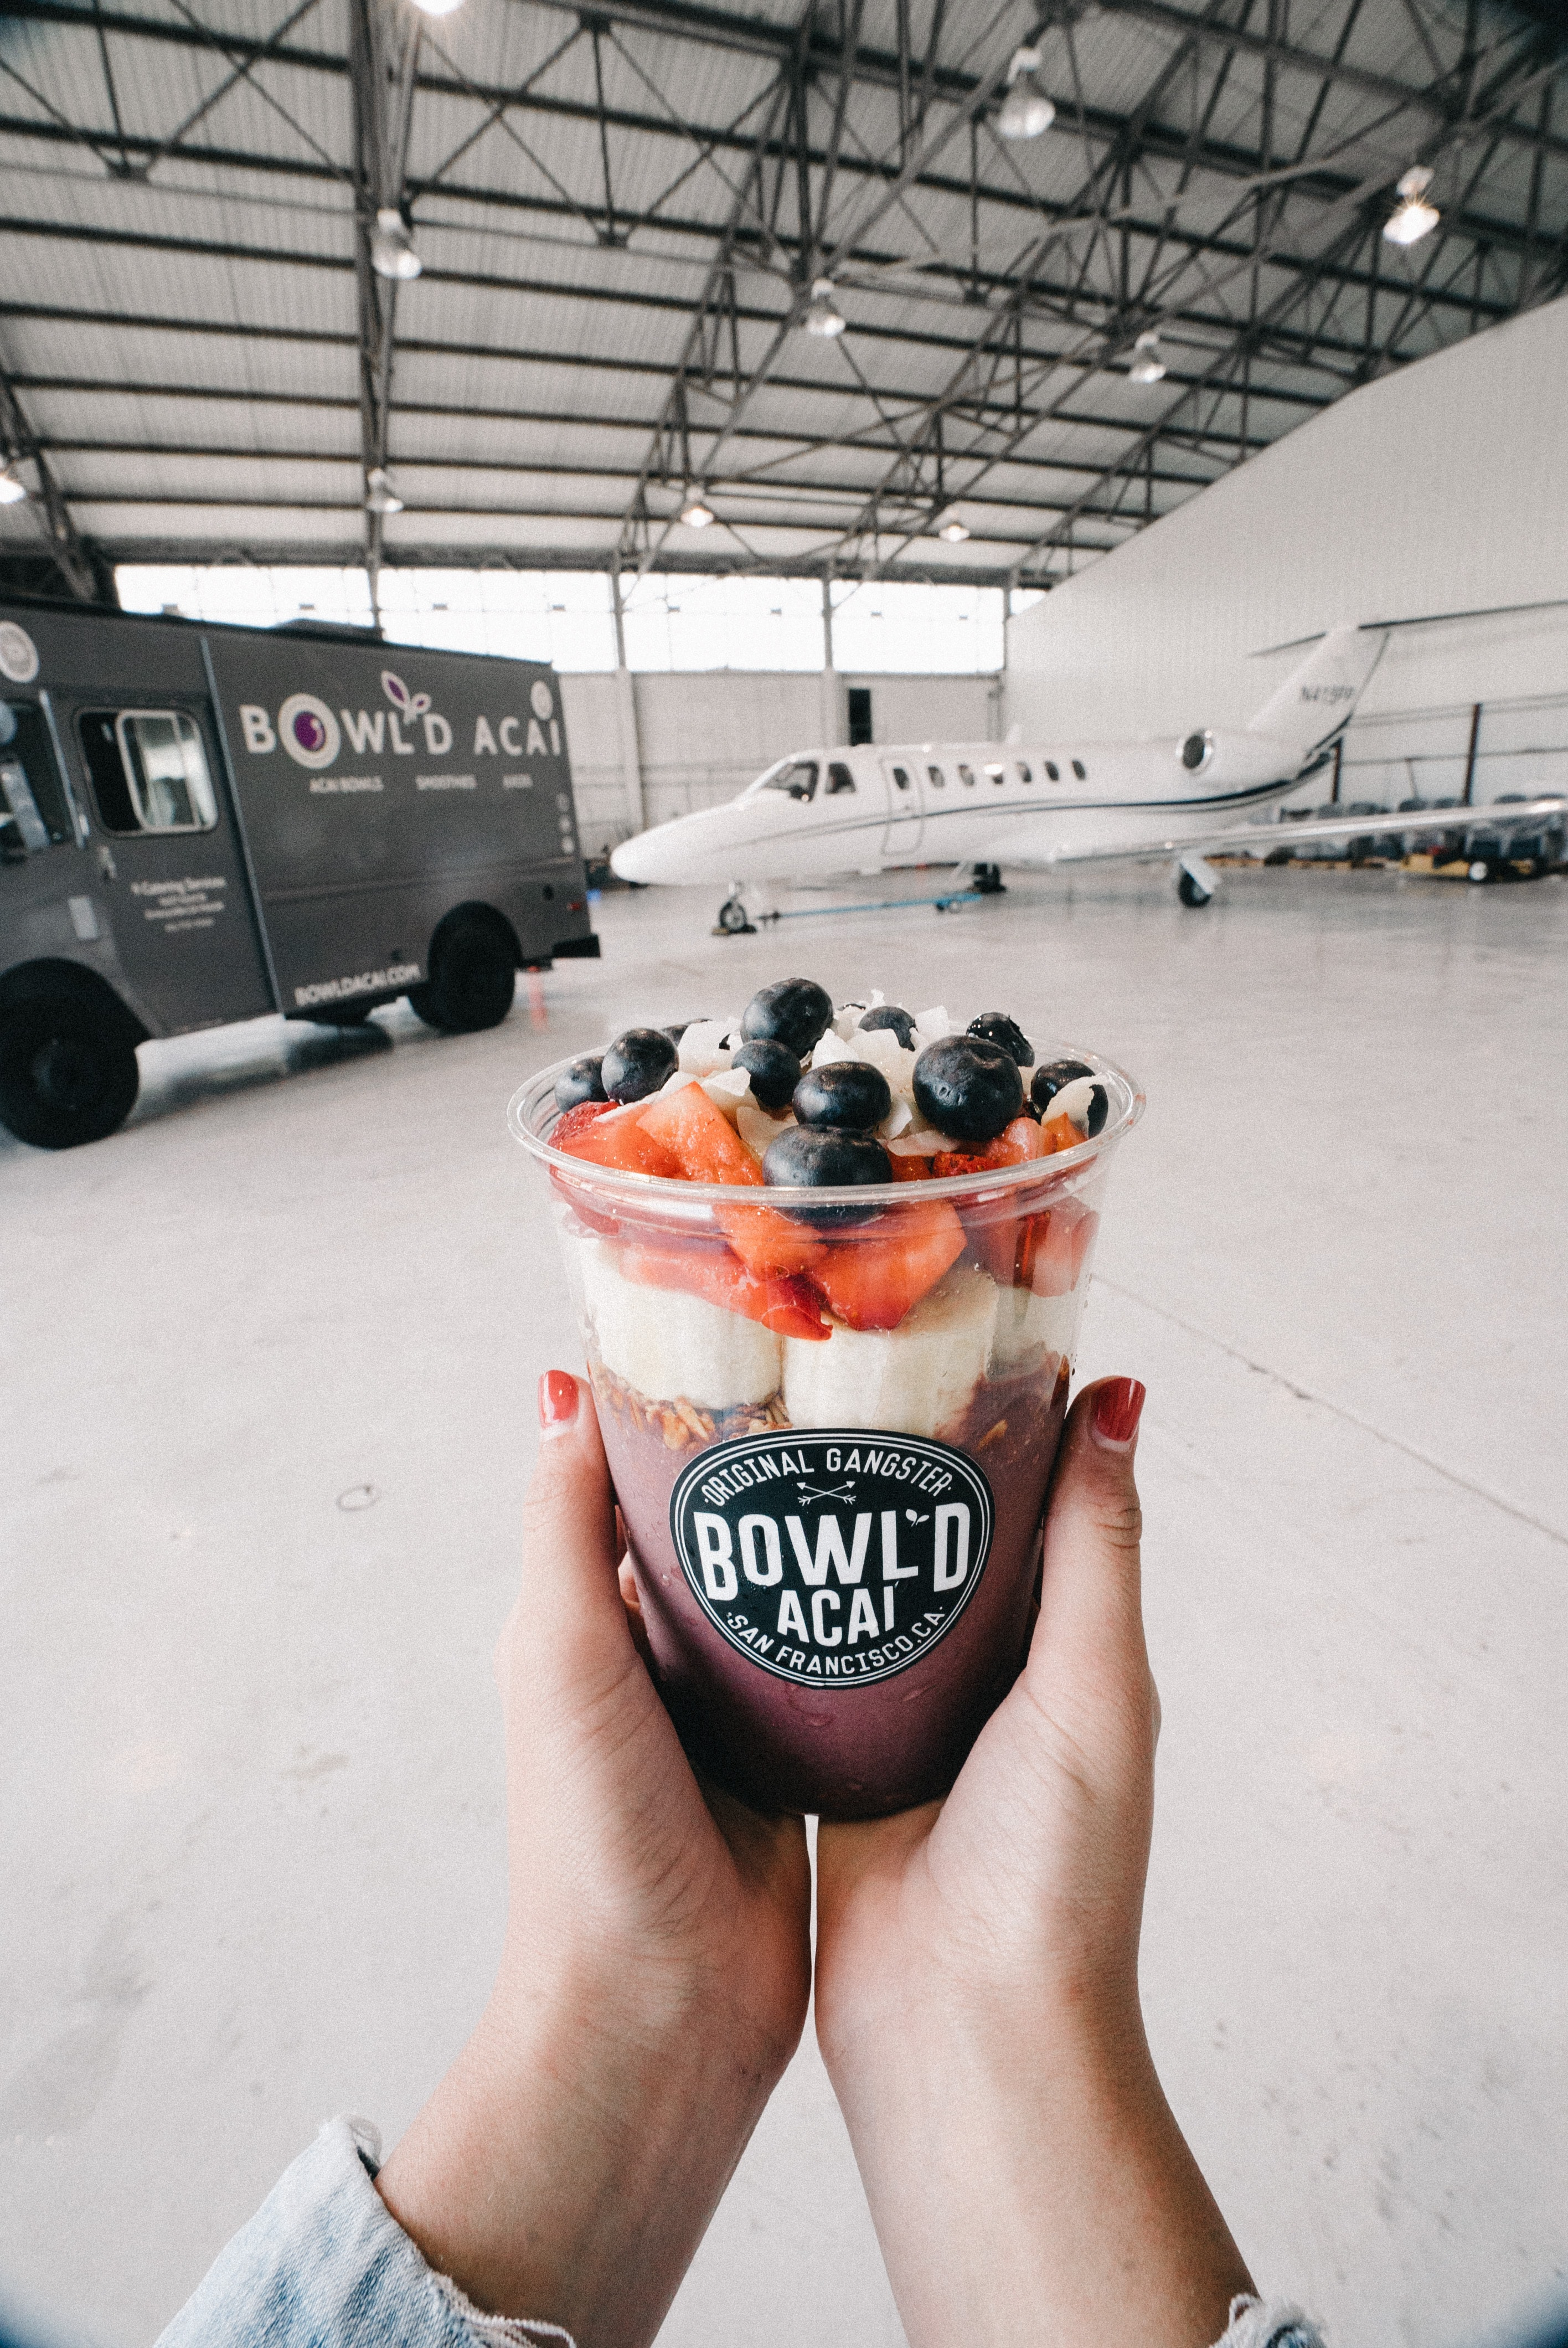 person holding Bowl'D acai cup